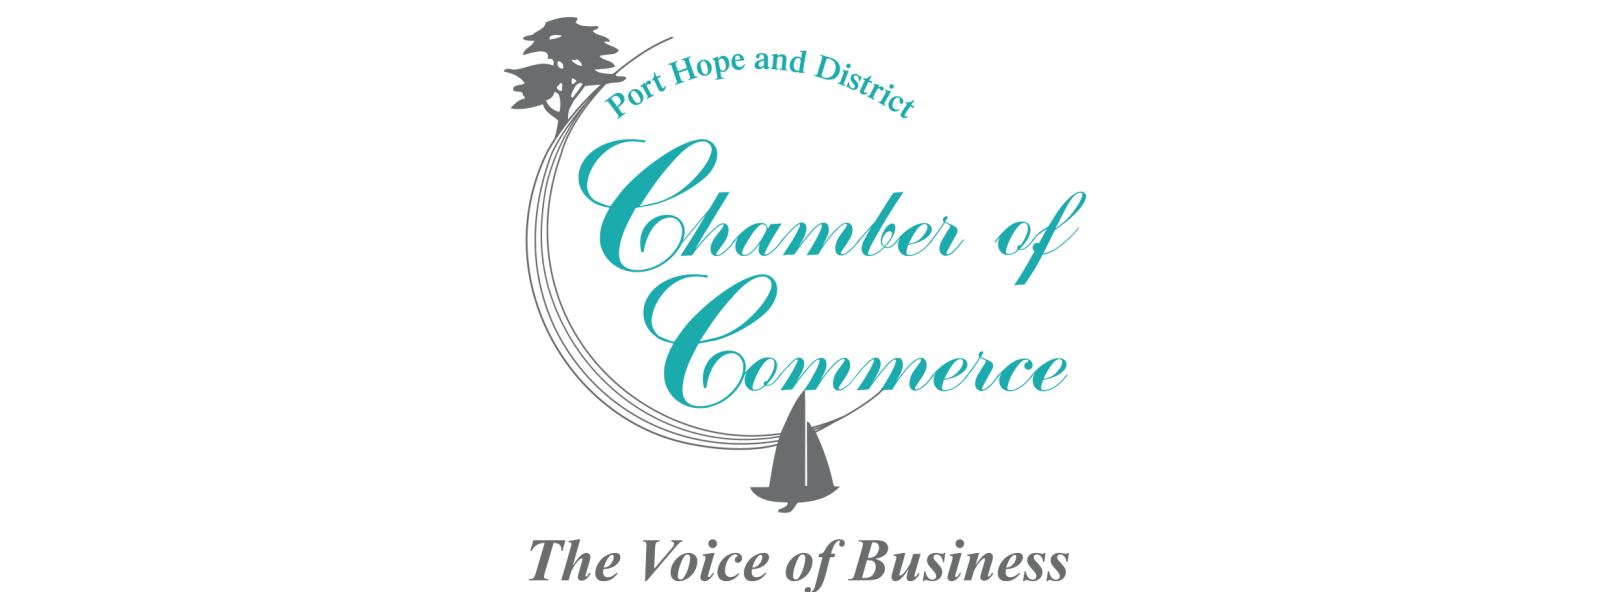 Port Hope and District Chamber of Commerce